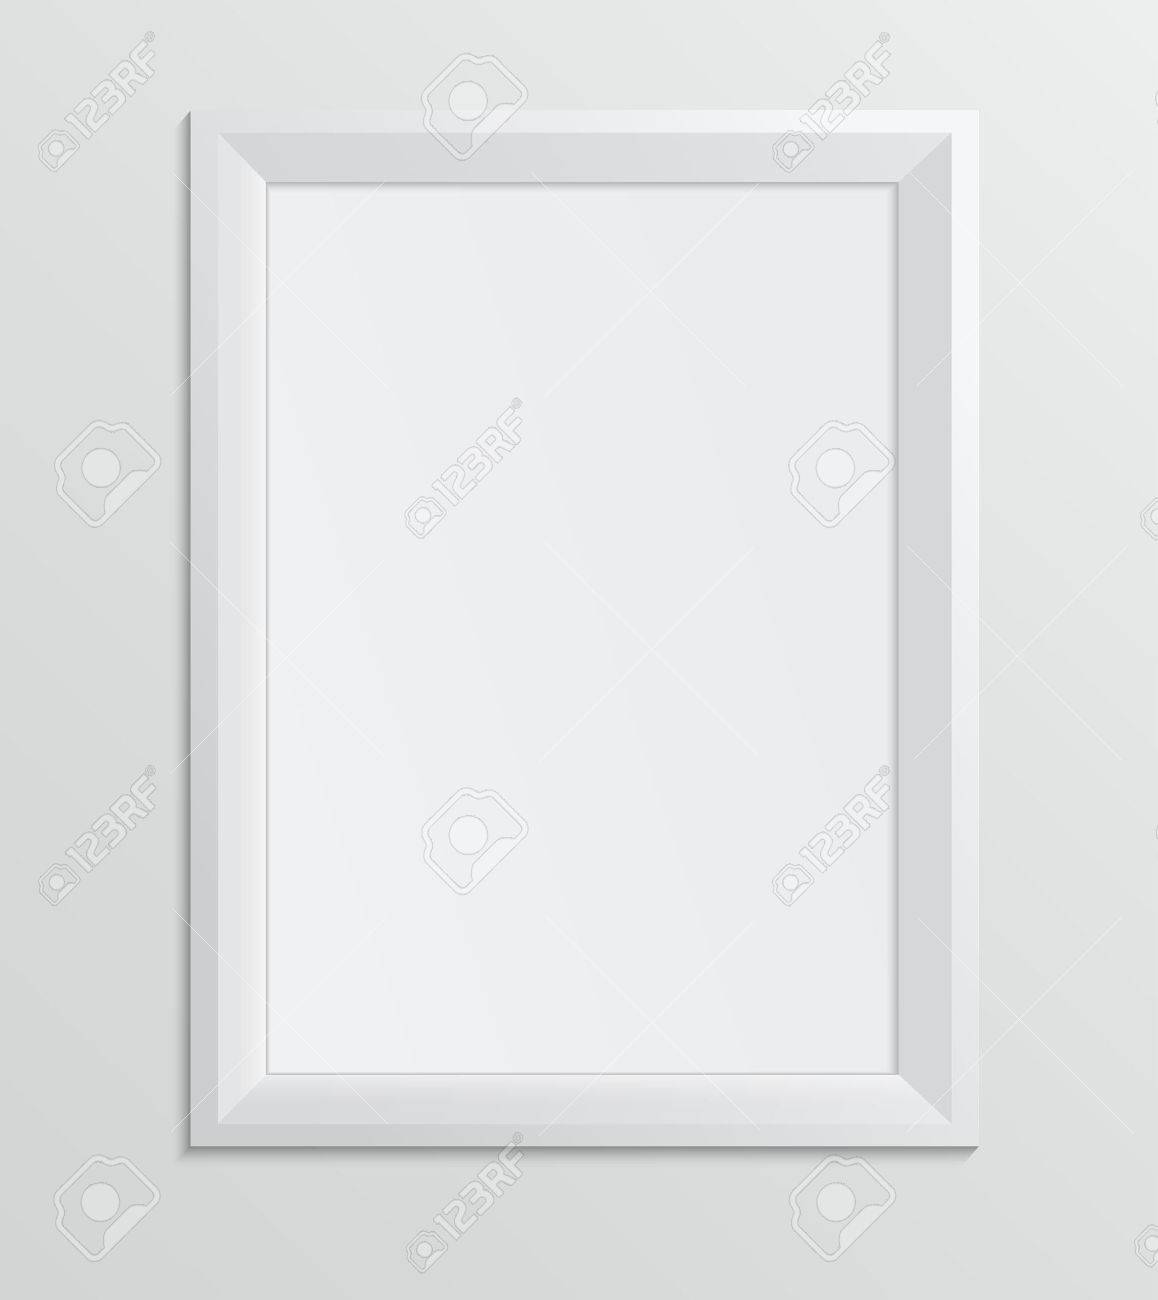 Empty white frame on a white background design a4 size royalty empty white frame on a white background design a4 size stock vector 27875918 jeuxipadfo Choice Image